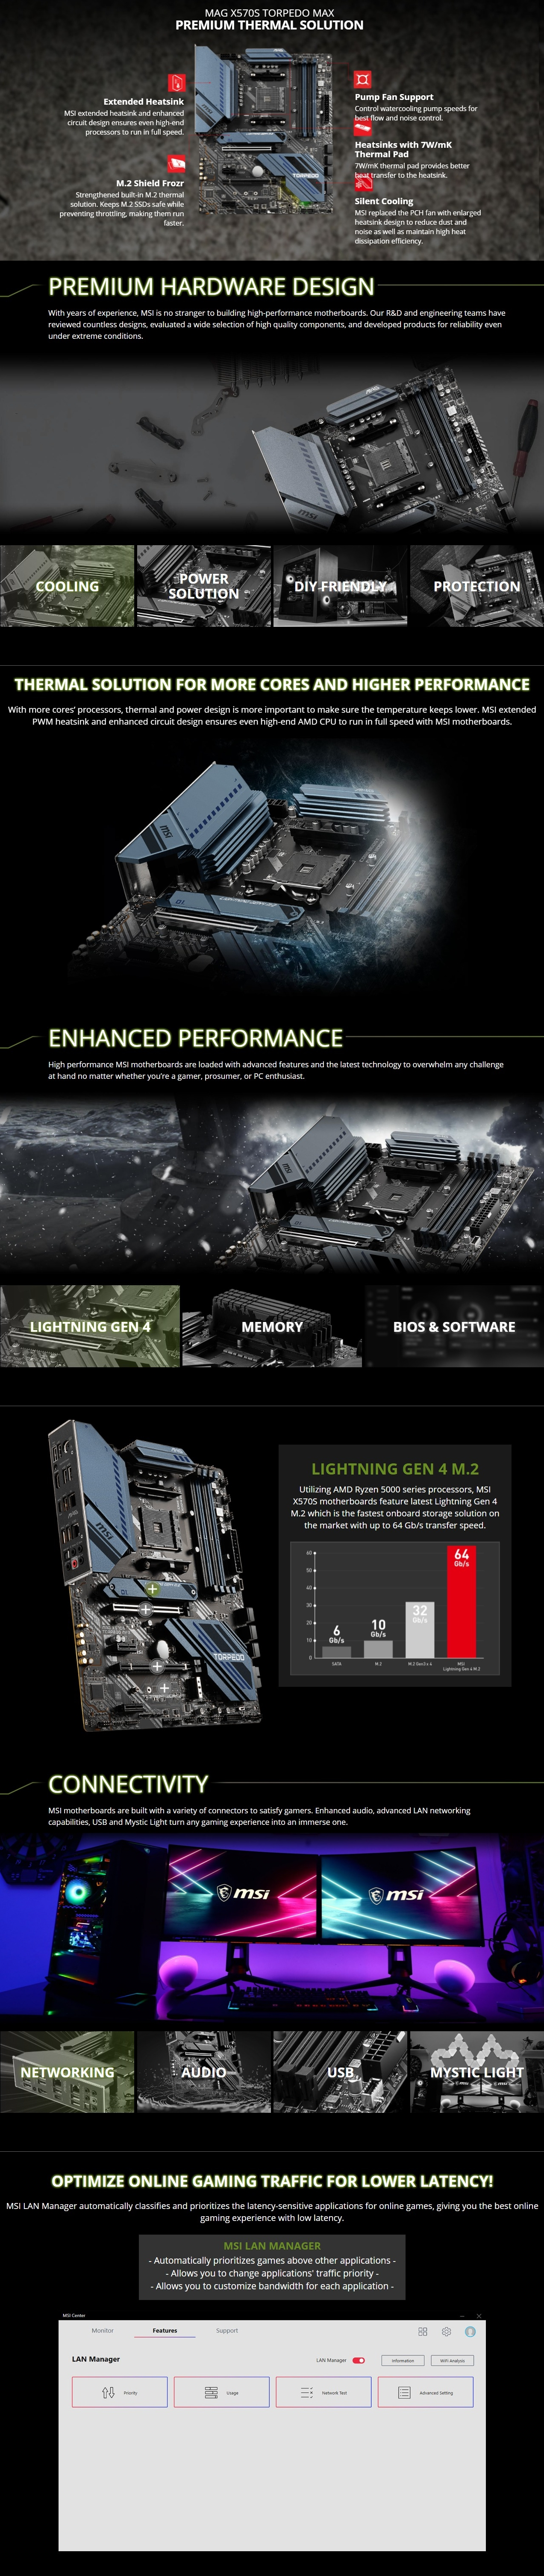 A large marketing image providing additional information about the product MSI MAG X570S Torpedo MAX AM4 ATX Desktop Motherboard - Additional alt info not provided